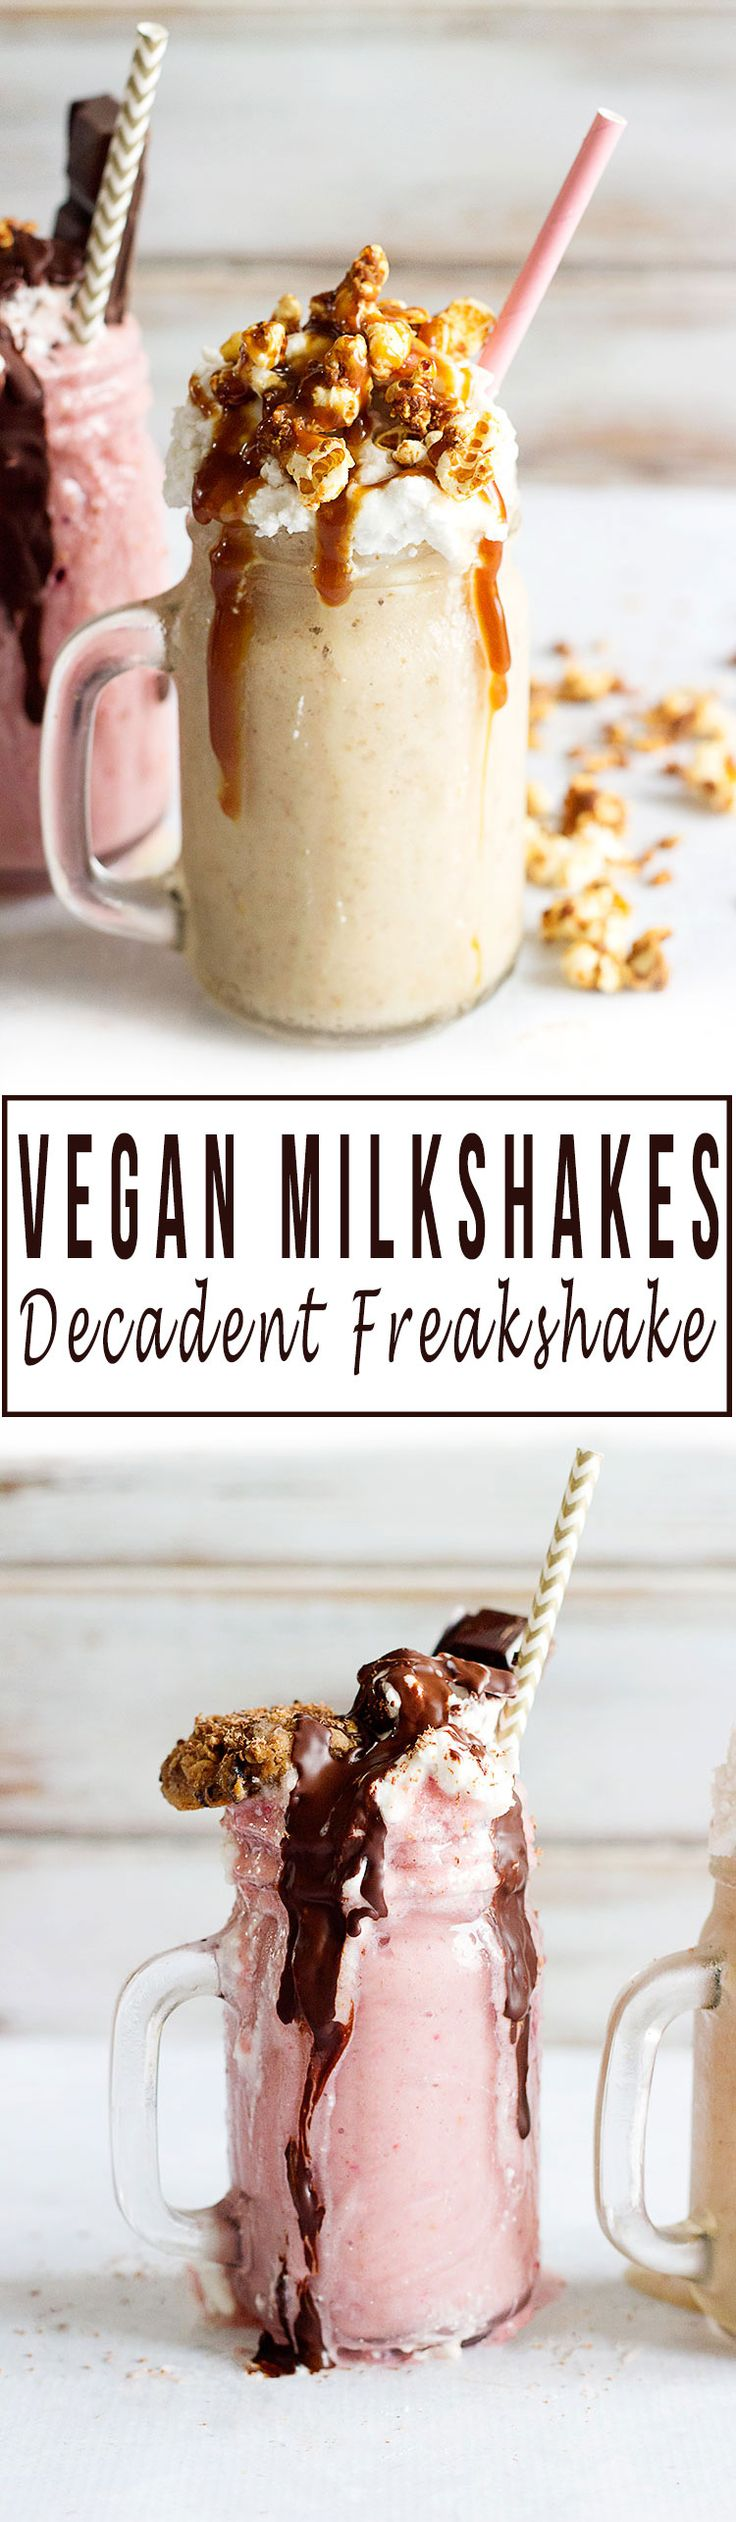 We are all about Vegan Freakshakes at VegNews! Check out these amazing recipes from Sprinkle of Green featuring macadamia milkshakes topped with peanut butter caramel and almond popcorn.